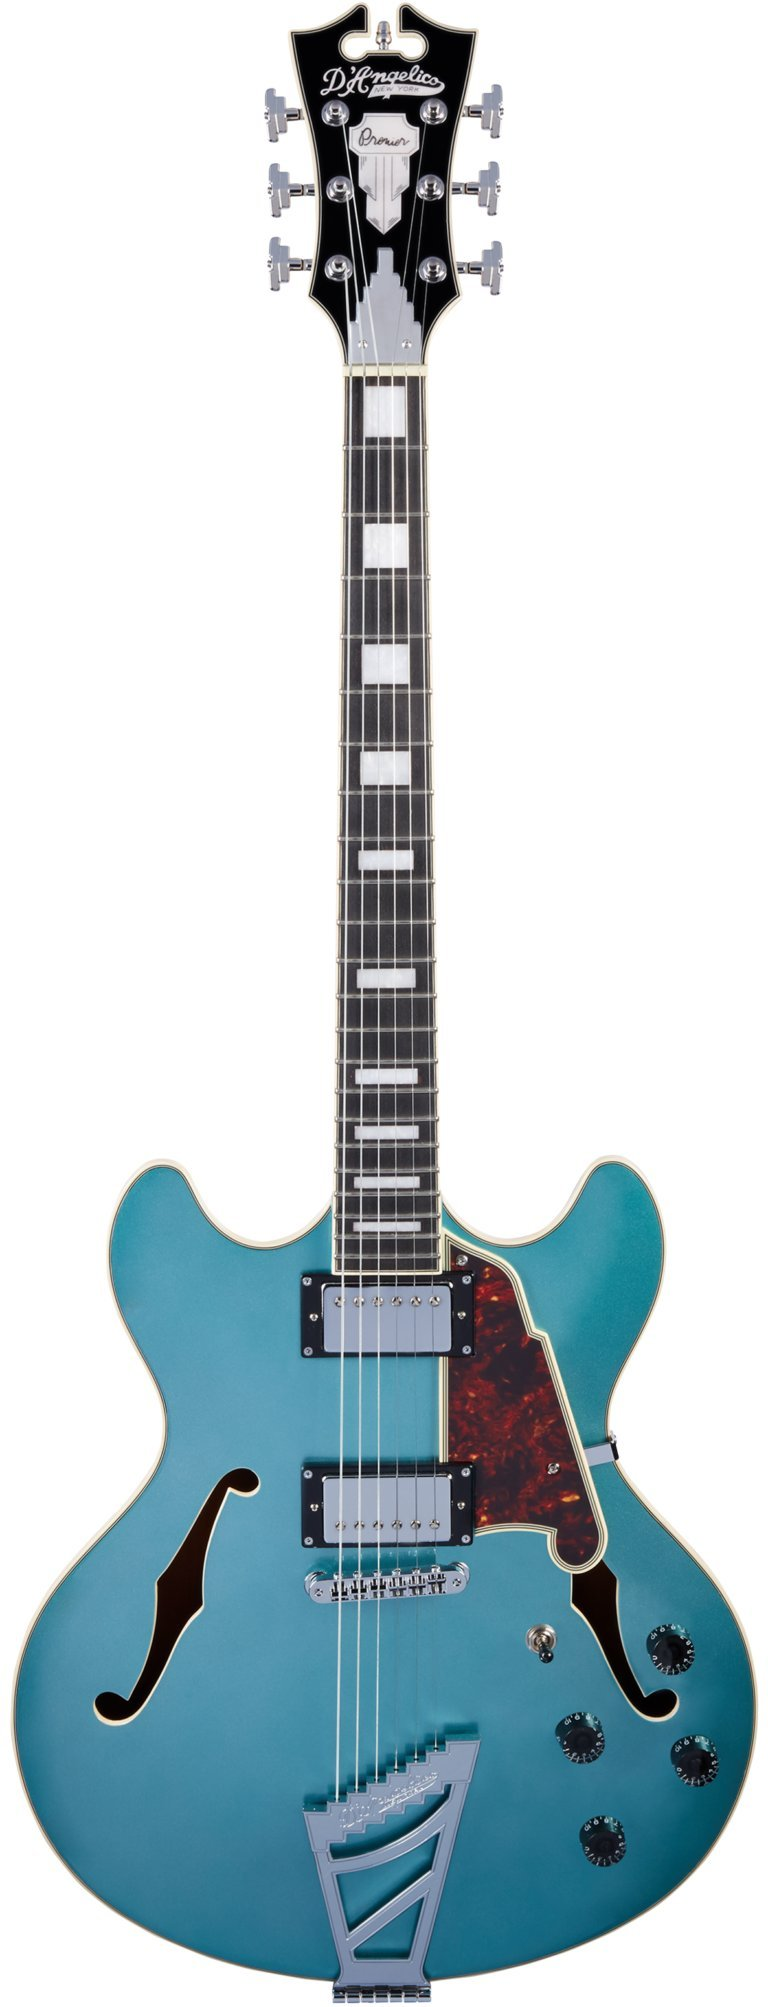 Cheap D Angelico Premier DC 12-String Semi-Hollow Electric Guitar - Ocean Turquoise Black Friday & Cyber Monday 2019